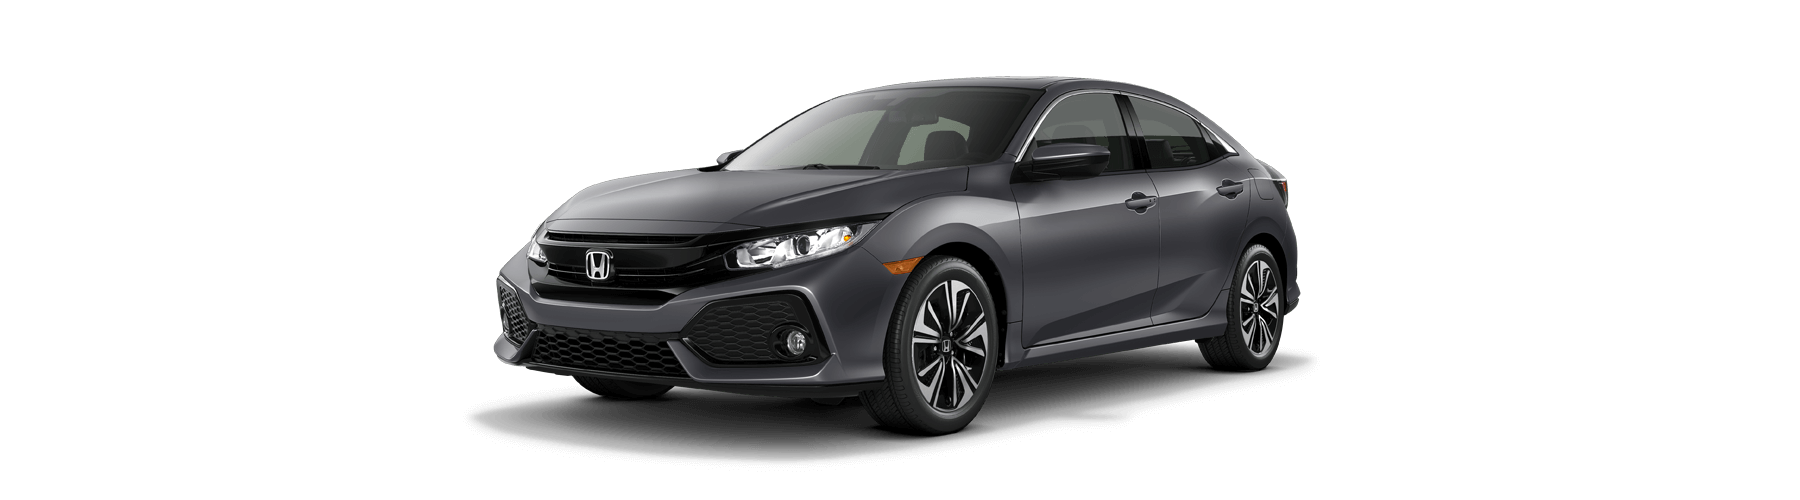 2018 Honda Civic Hatchback Front Angle